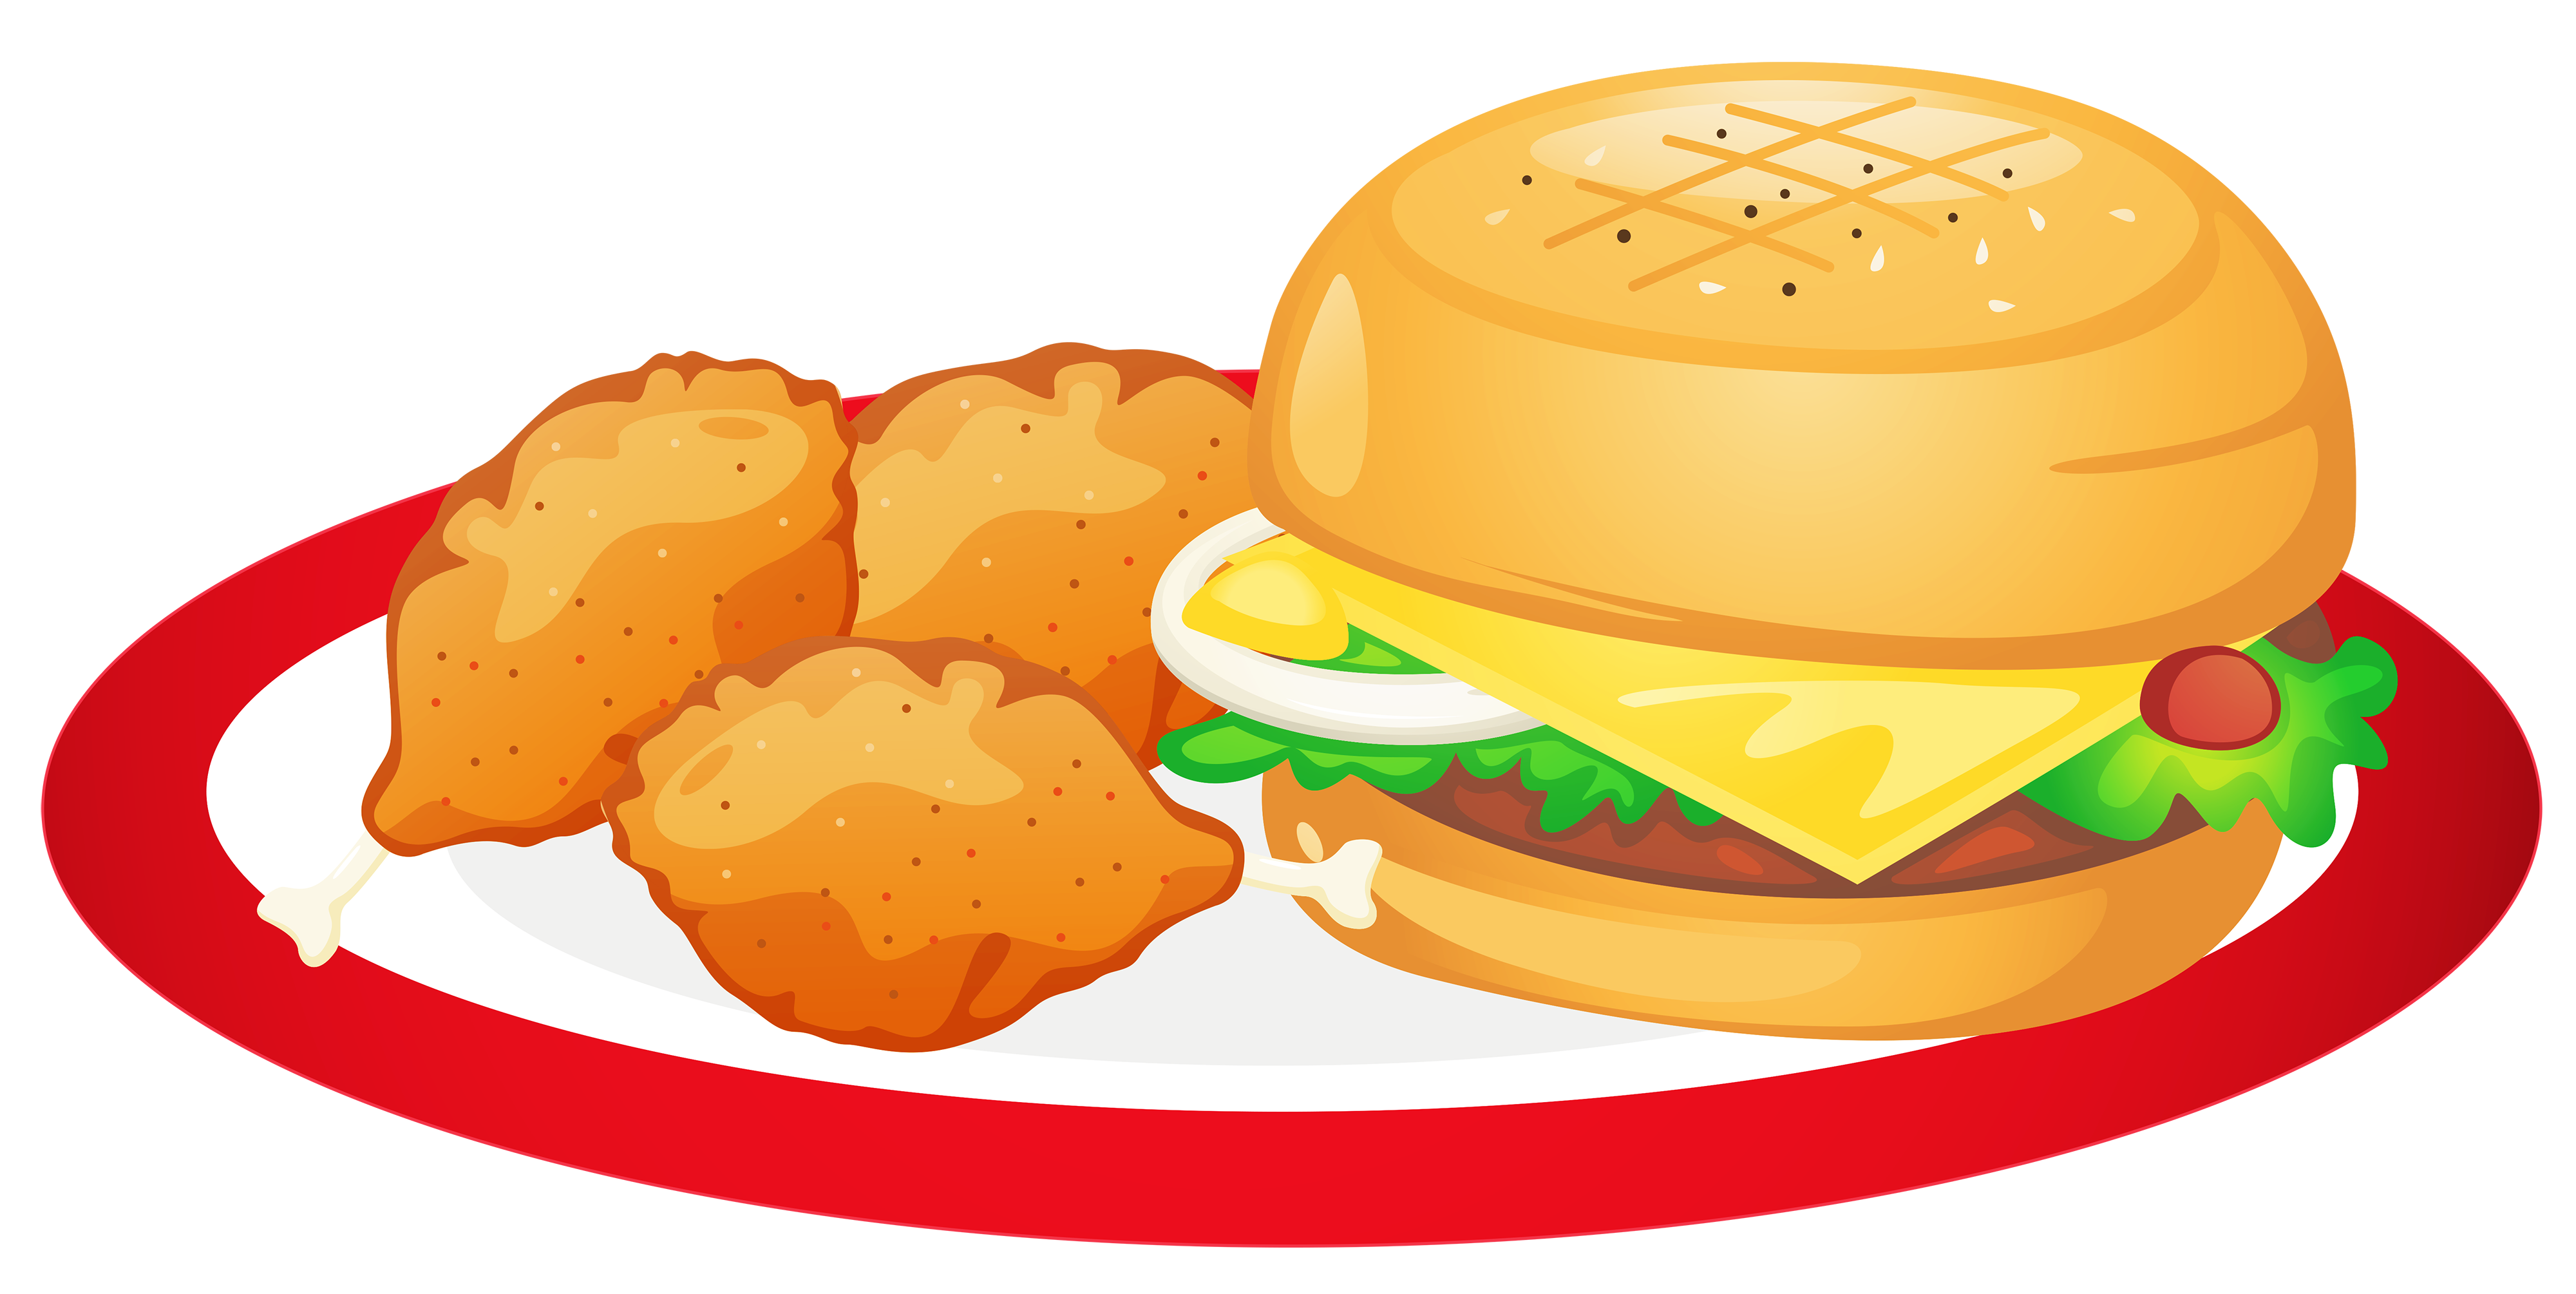 Food Clipart Png 9 A Clipart Station Food Clipart Food Clips Food